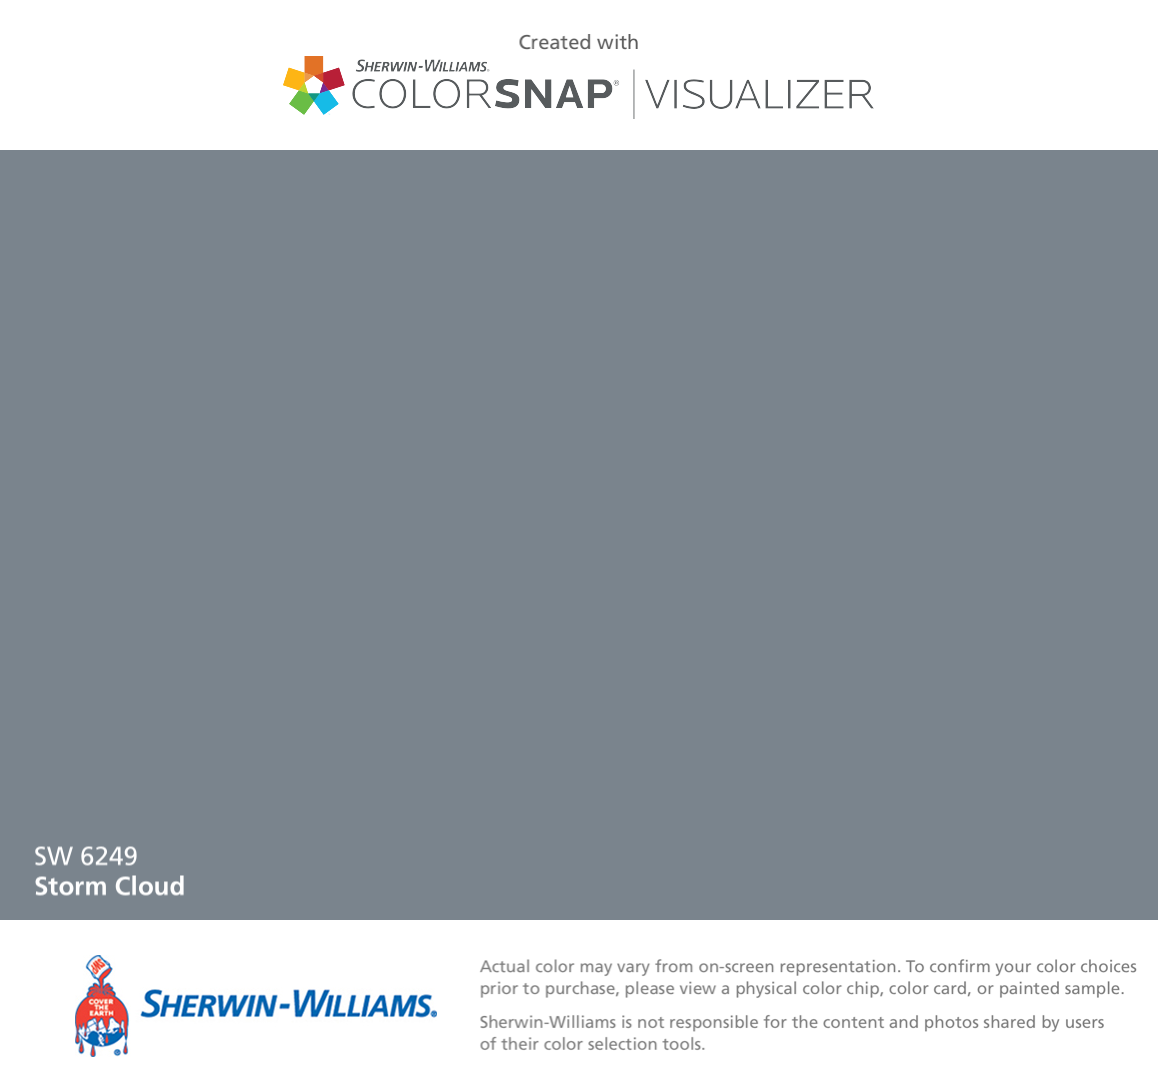 Sherwin williams paint colors sherwin williams 6249 storm cloud - I Found This Color With Colorsnap Visualizer For Iphone By Sherwin Williams Storm Cloud Sw